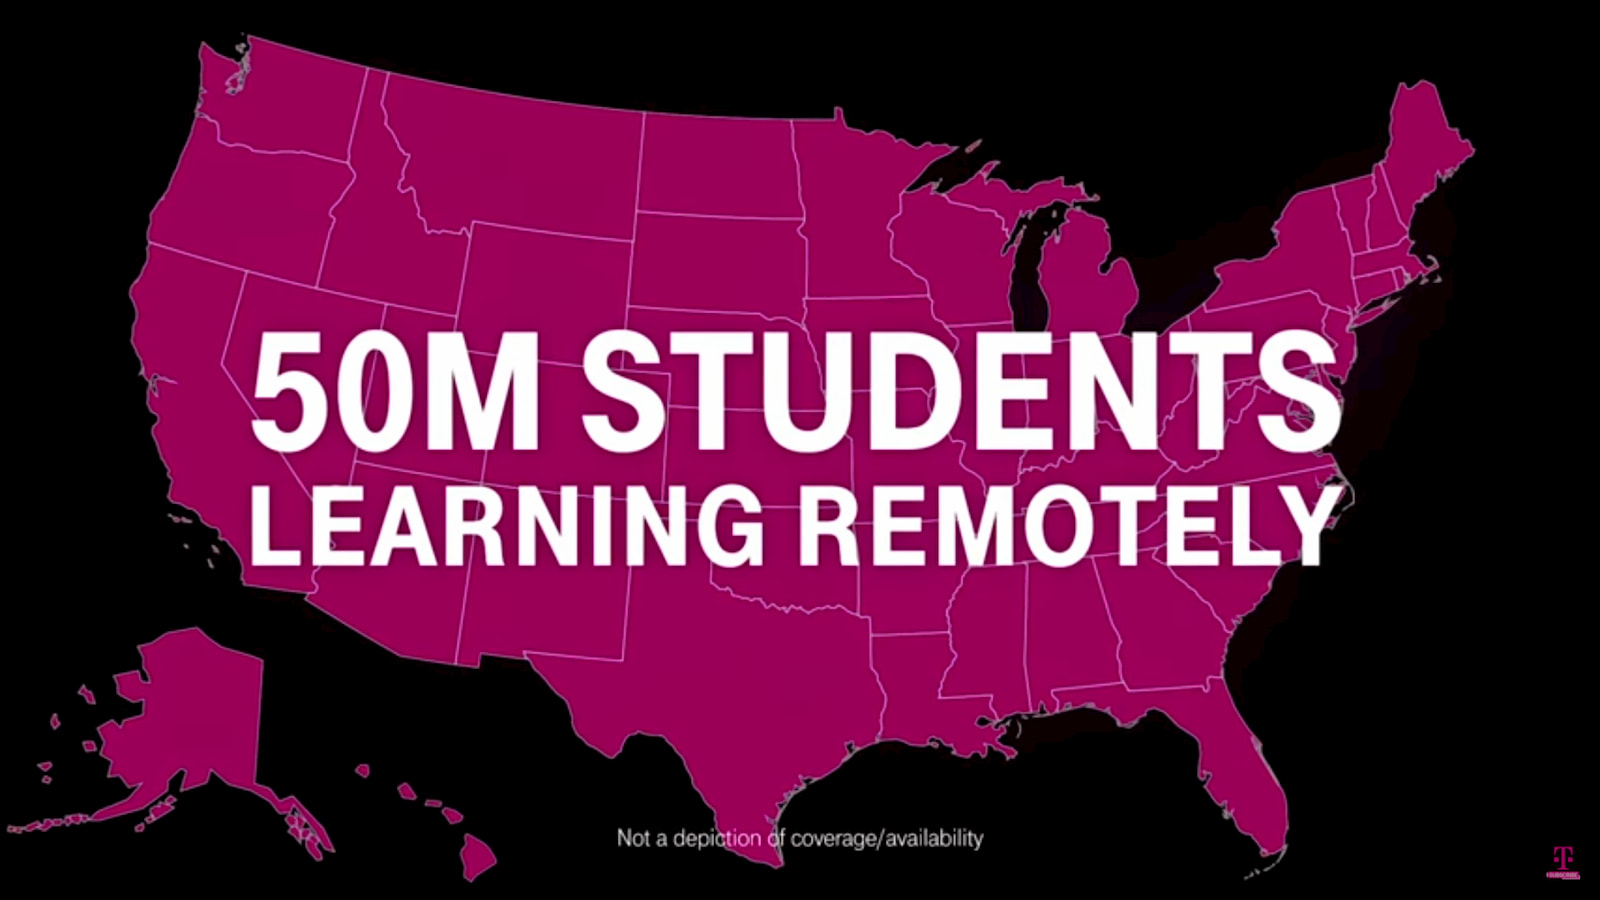 Project 10 Million: T-Mobile brings free high-speed internet and at-cost Chromebooks to students